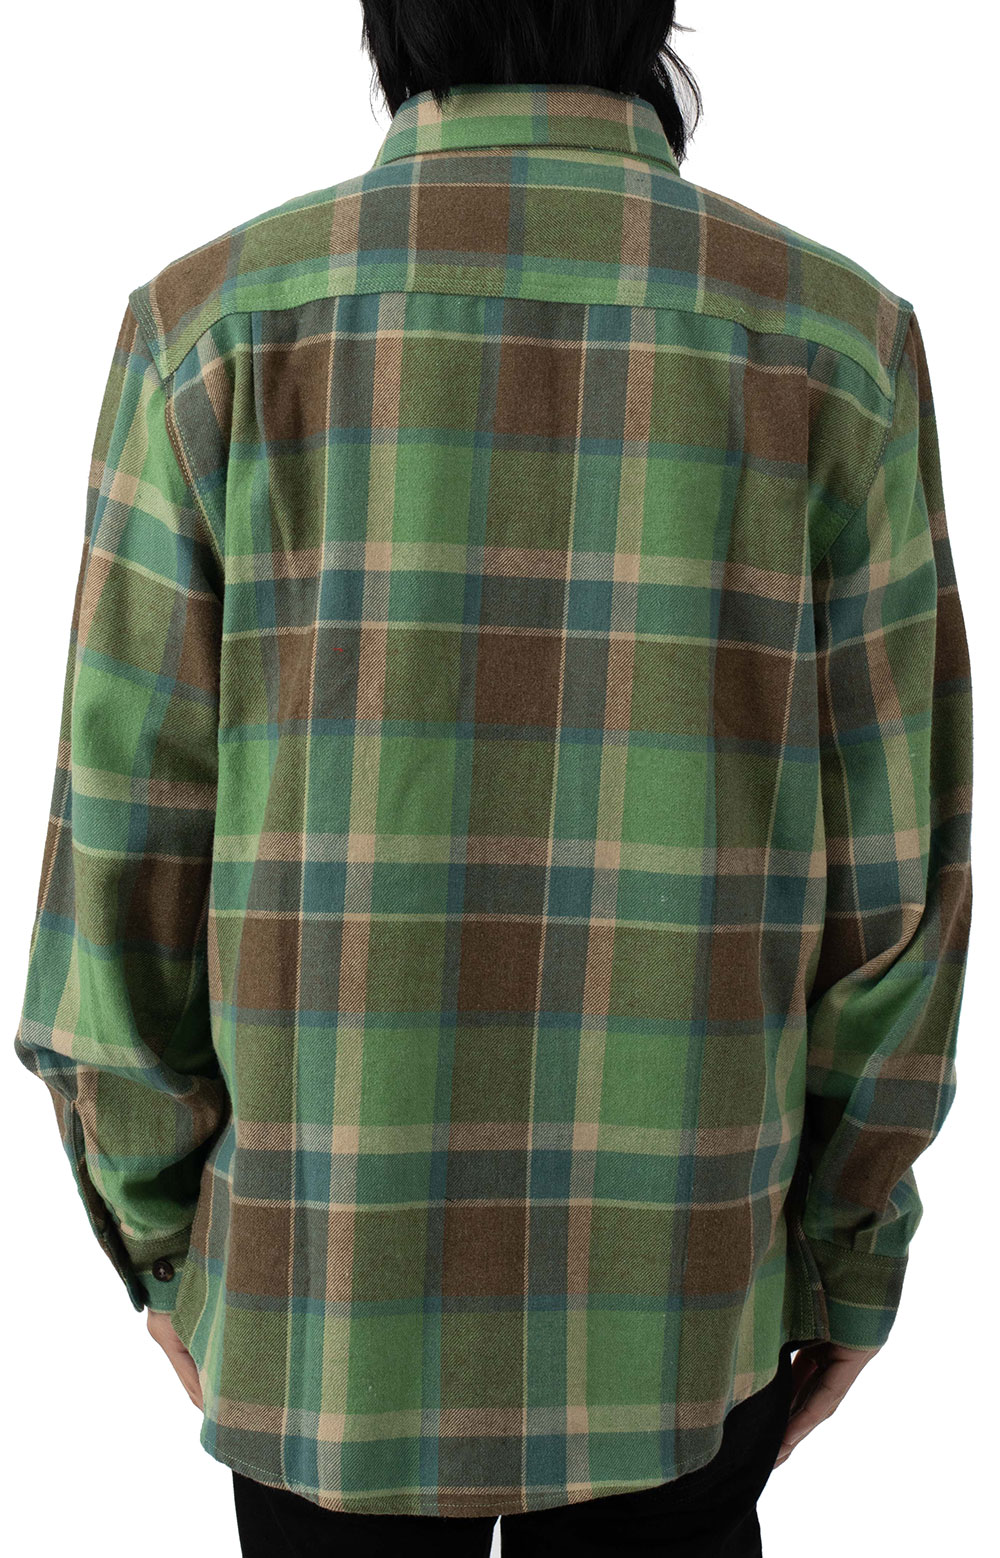 Bowery L/S Flannel - Toffee 3